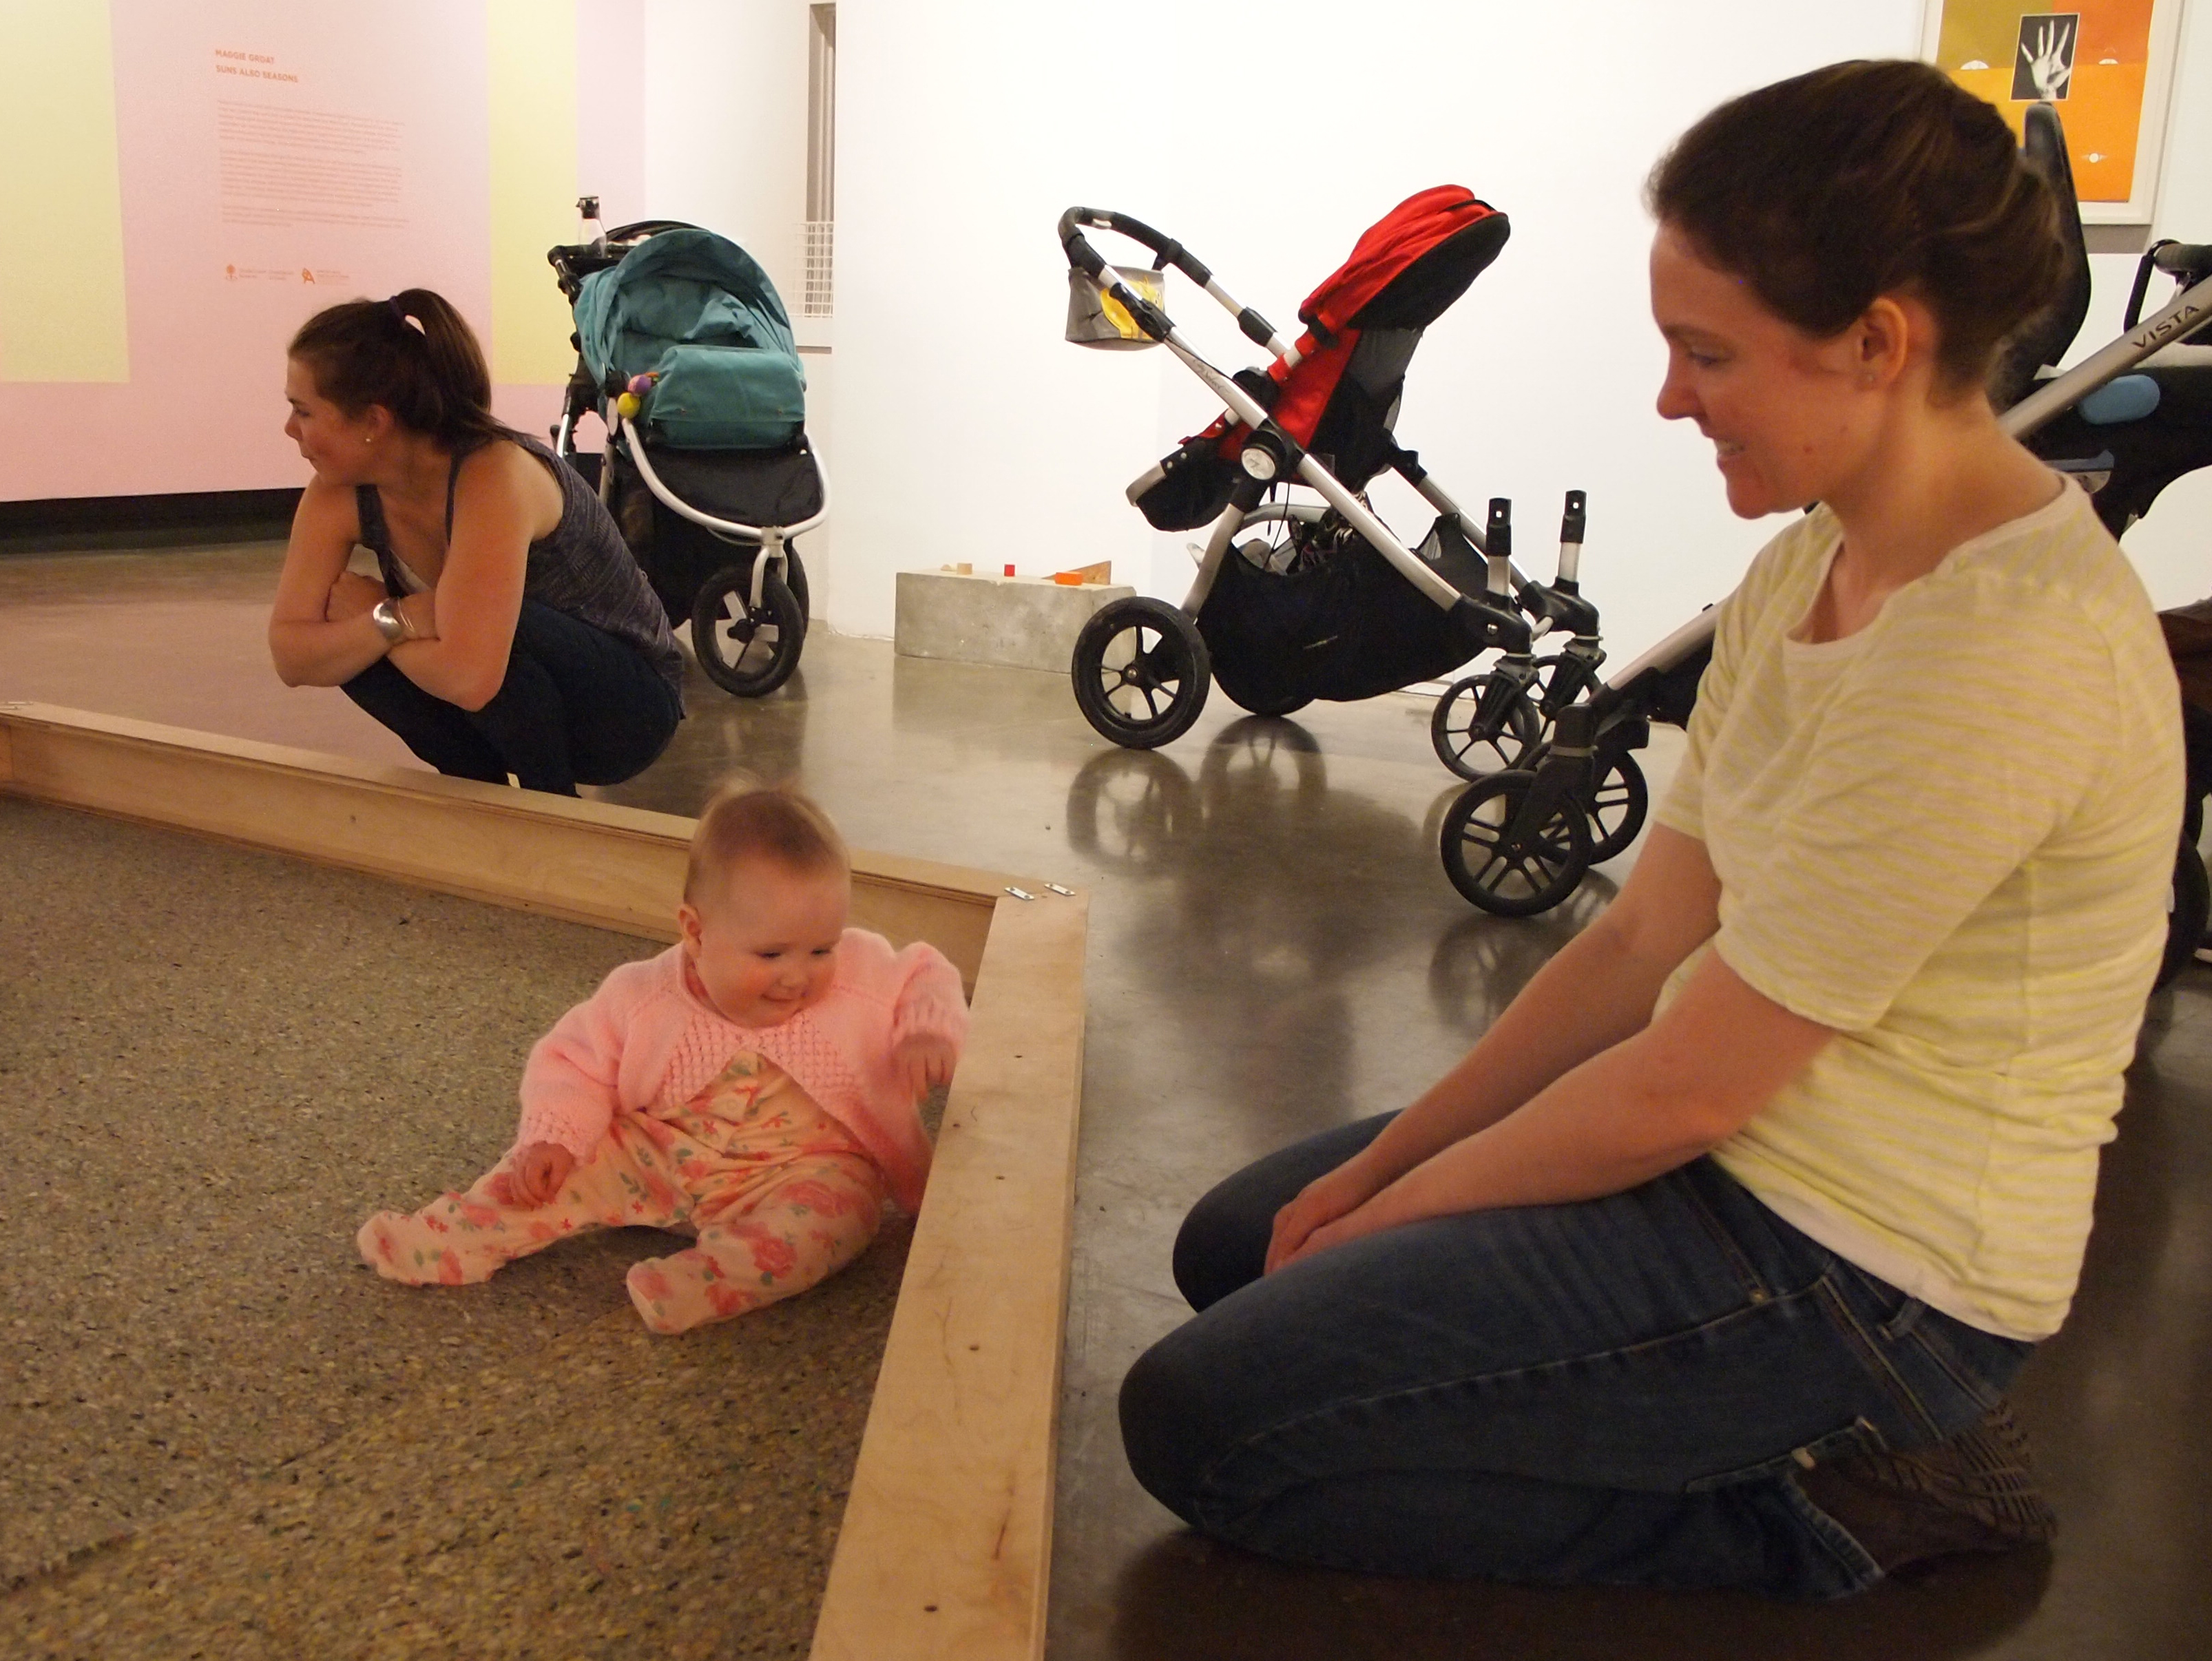 A mother kneels on the floor alongside her infant daughter as she plays inside a Maggie Groat installation on a recent Stroller Tour